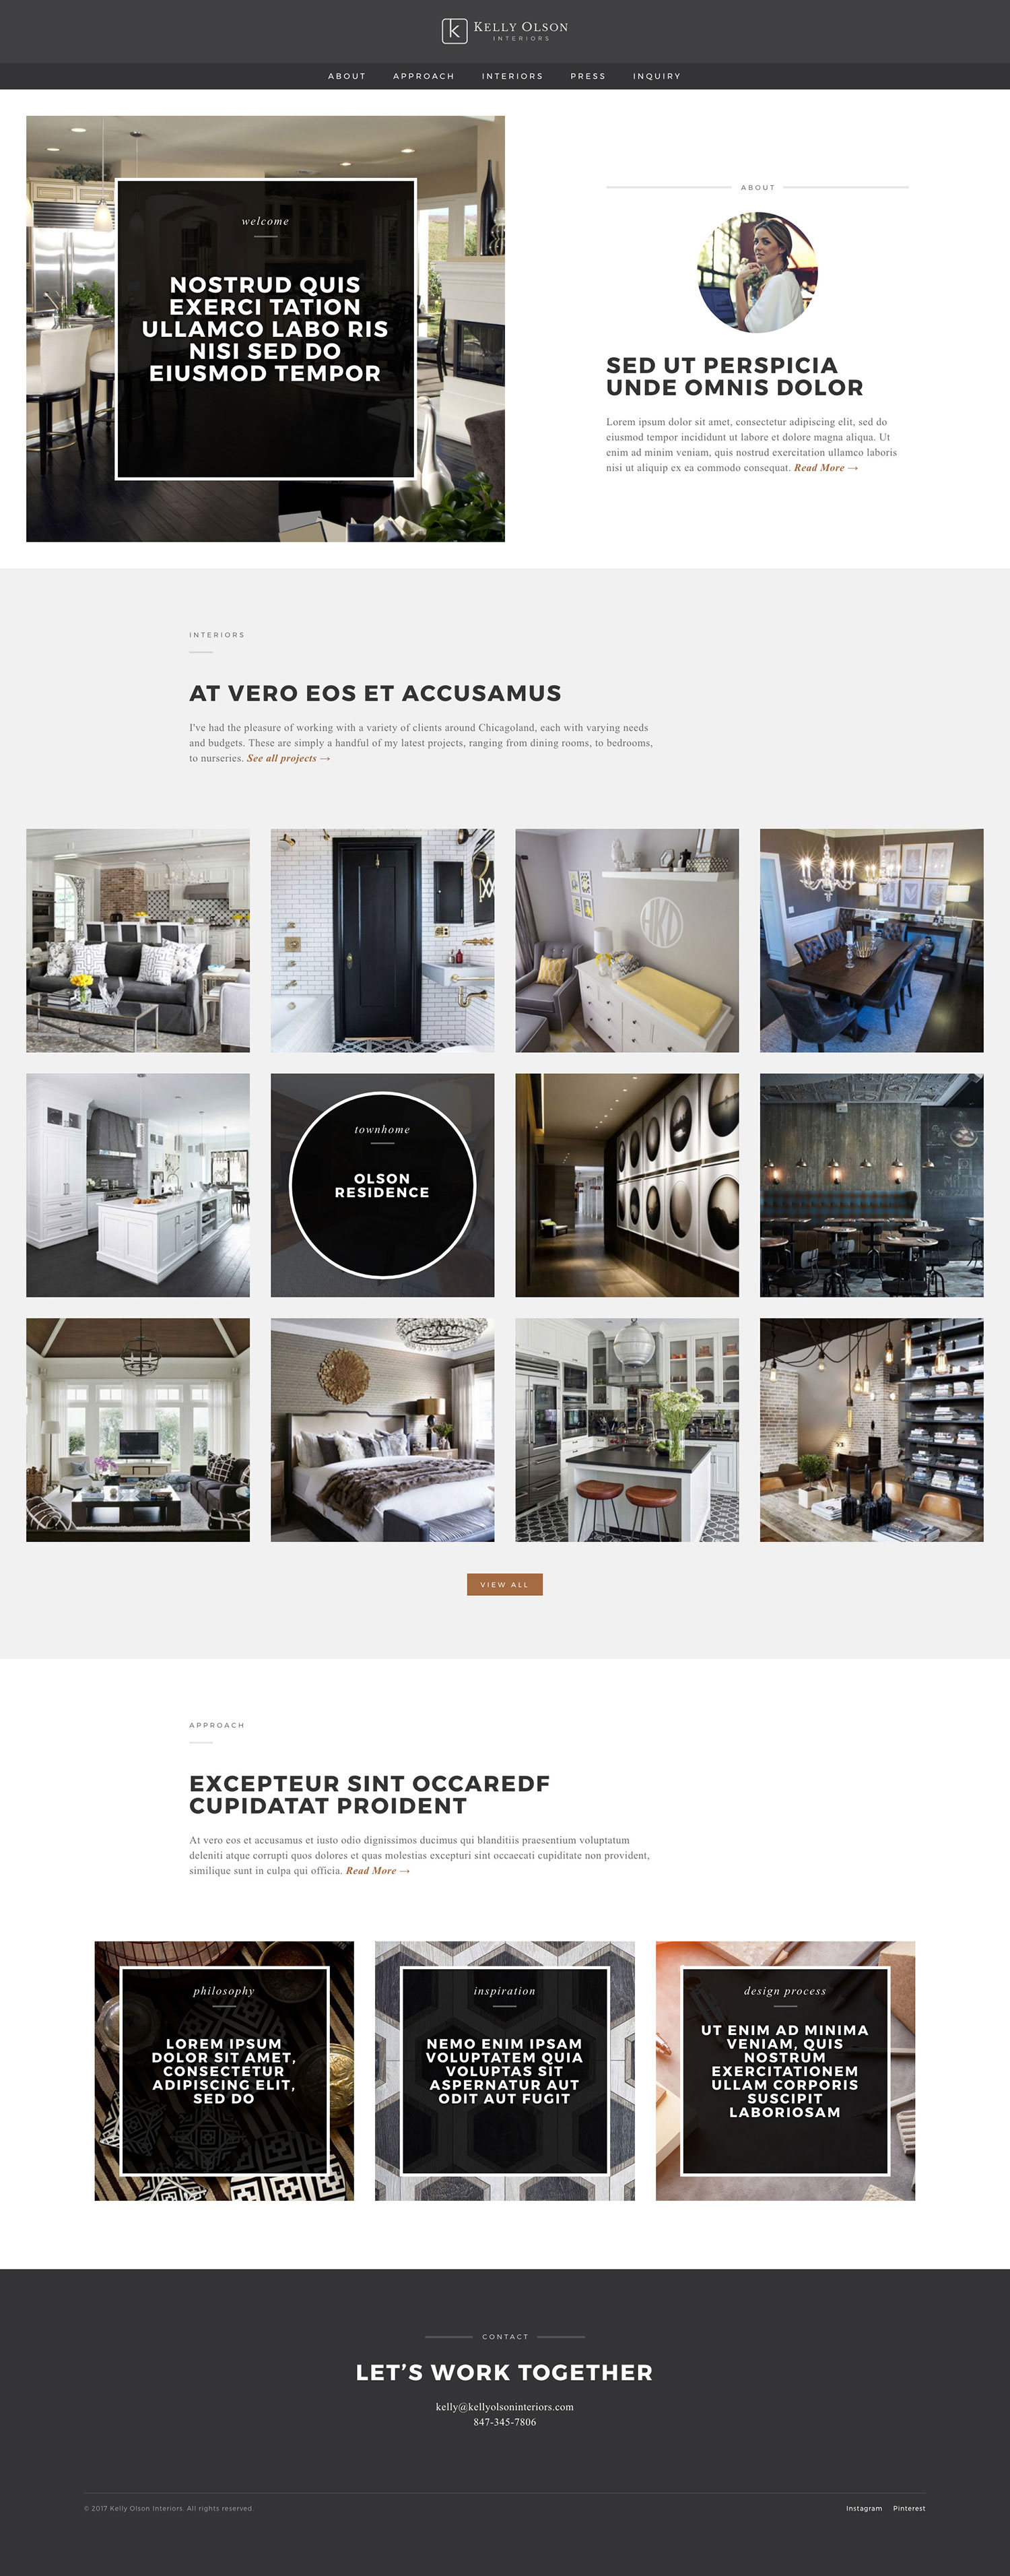 Kelly Olson Interiors - Homepage - Browser View